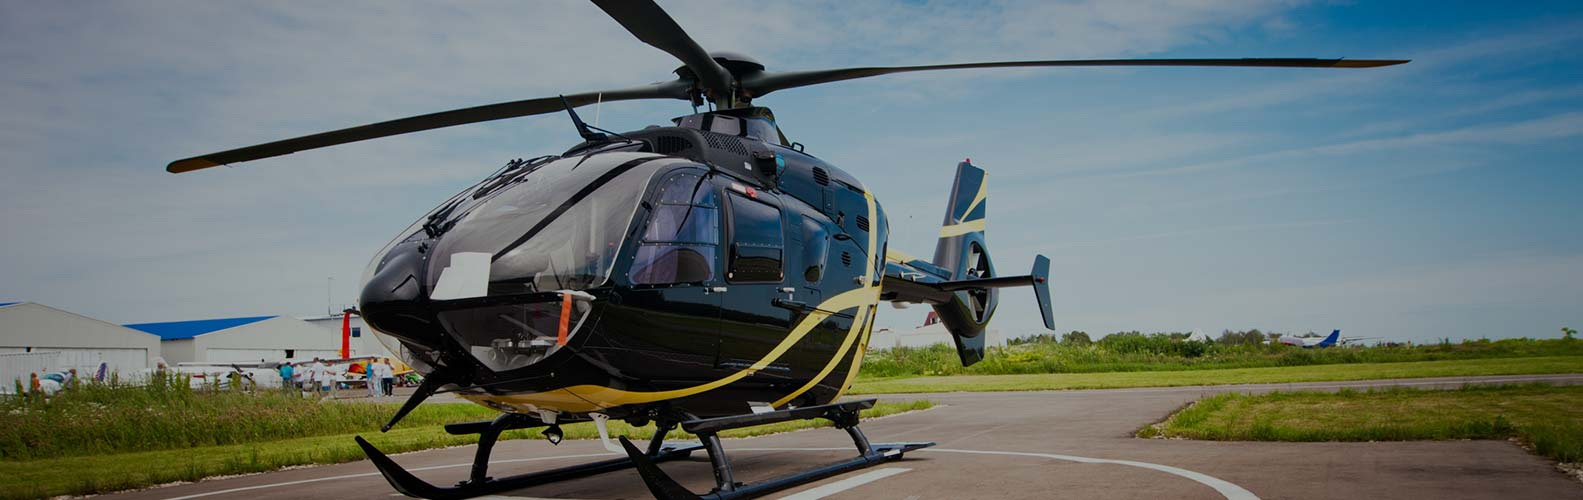 Helicopter-hire_banner